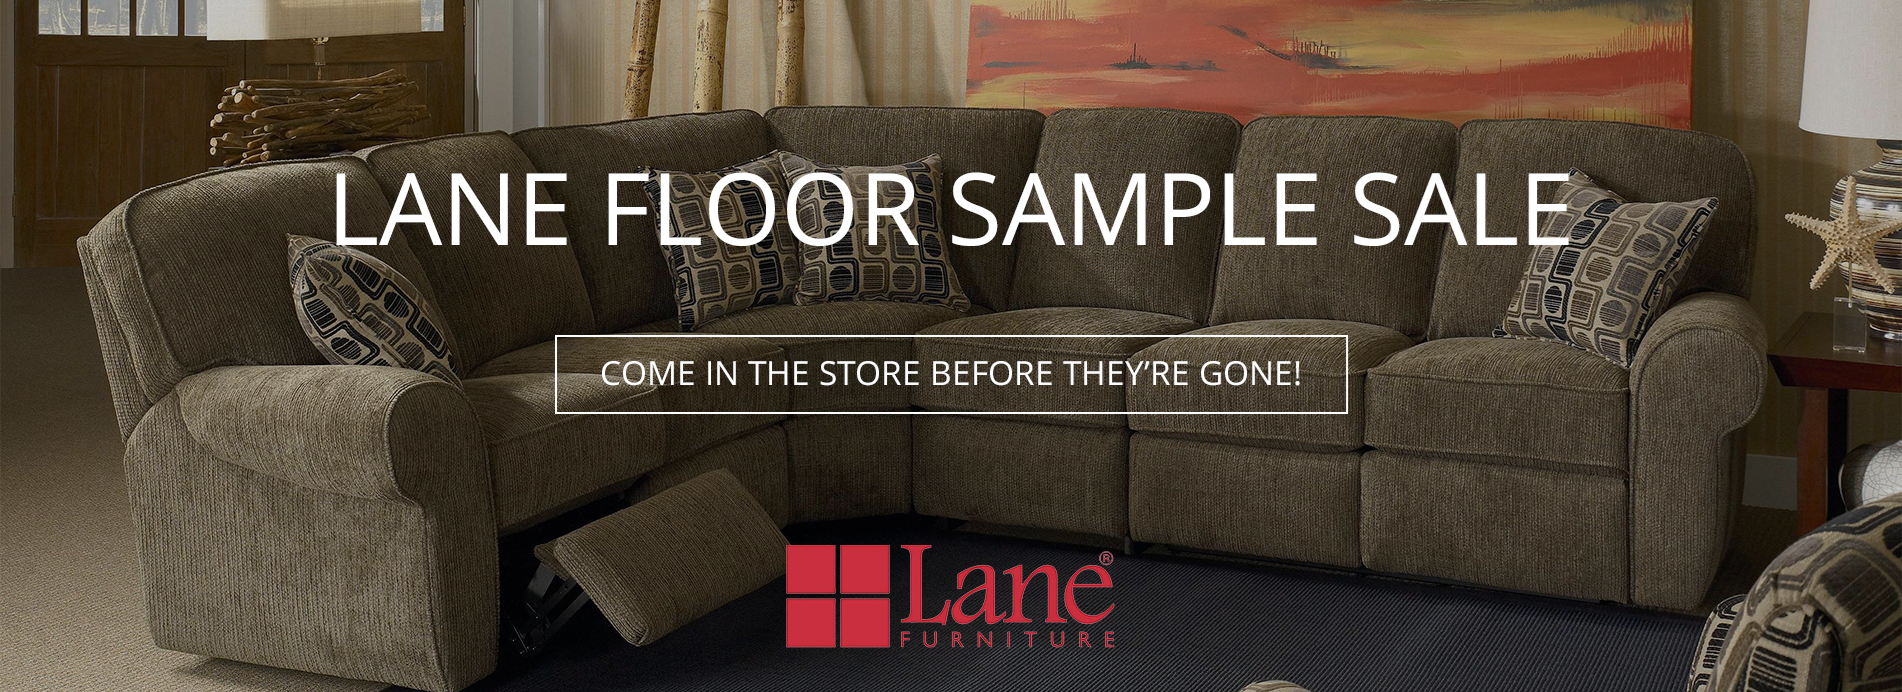 Lane Floor Sample Sale